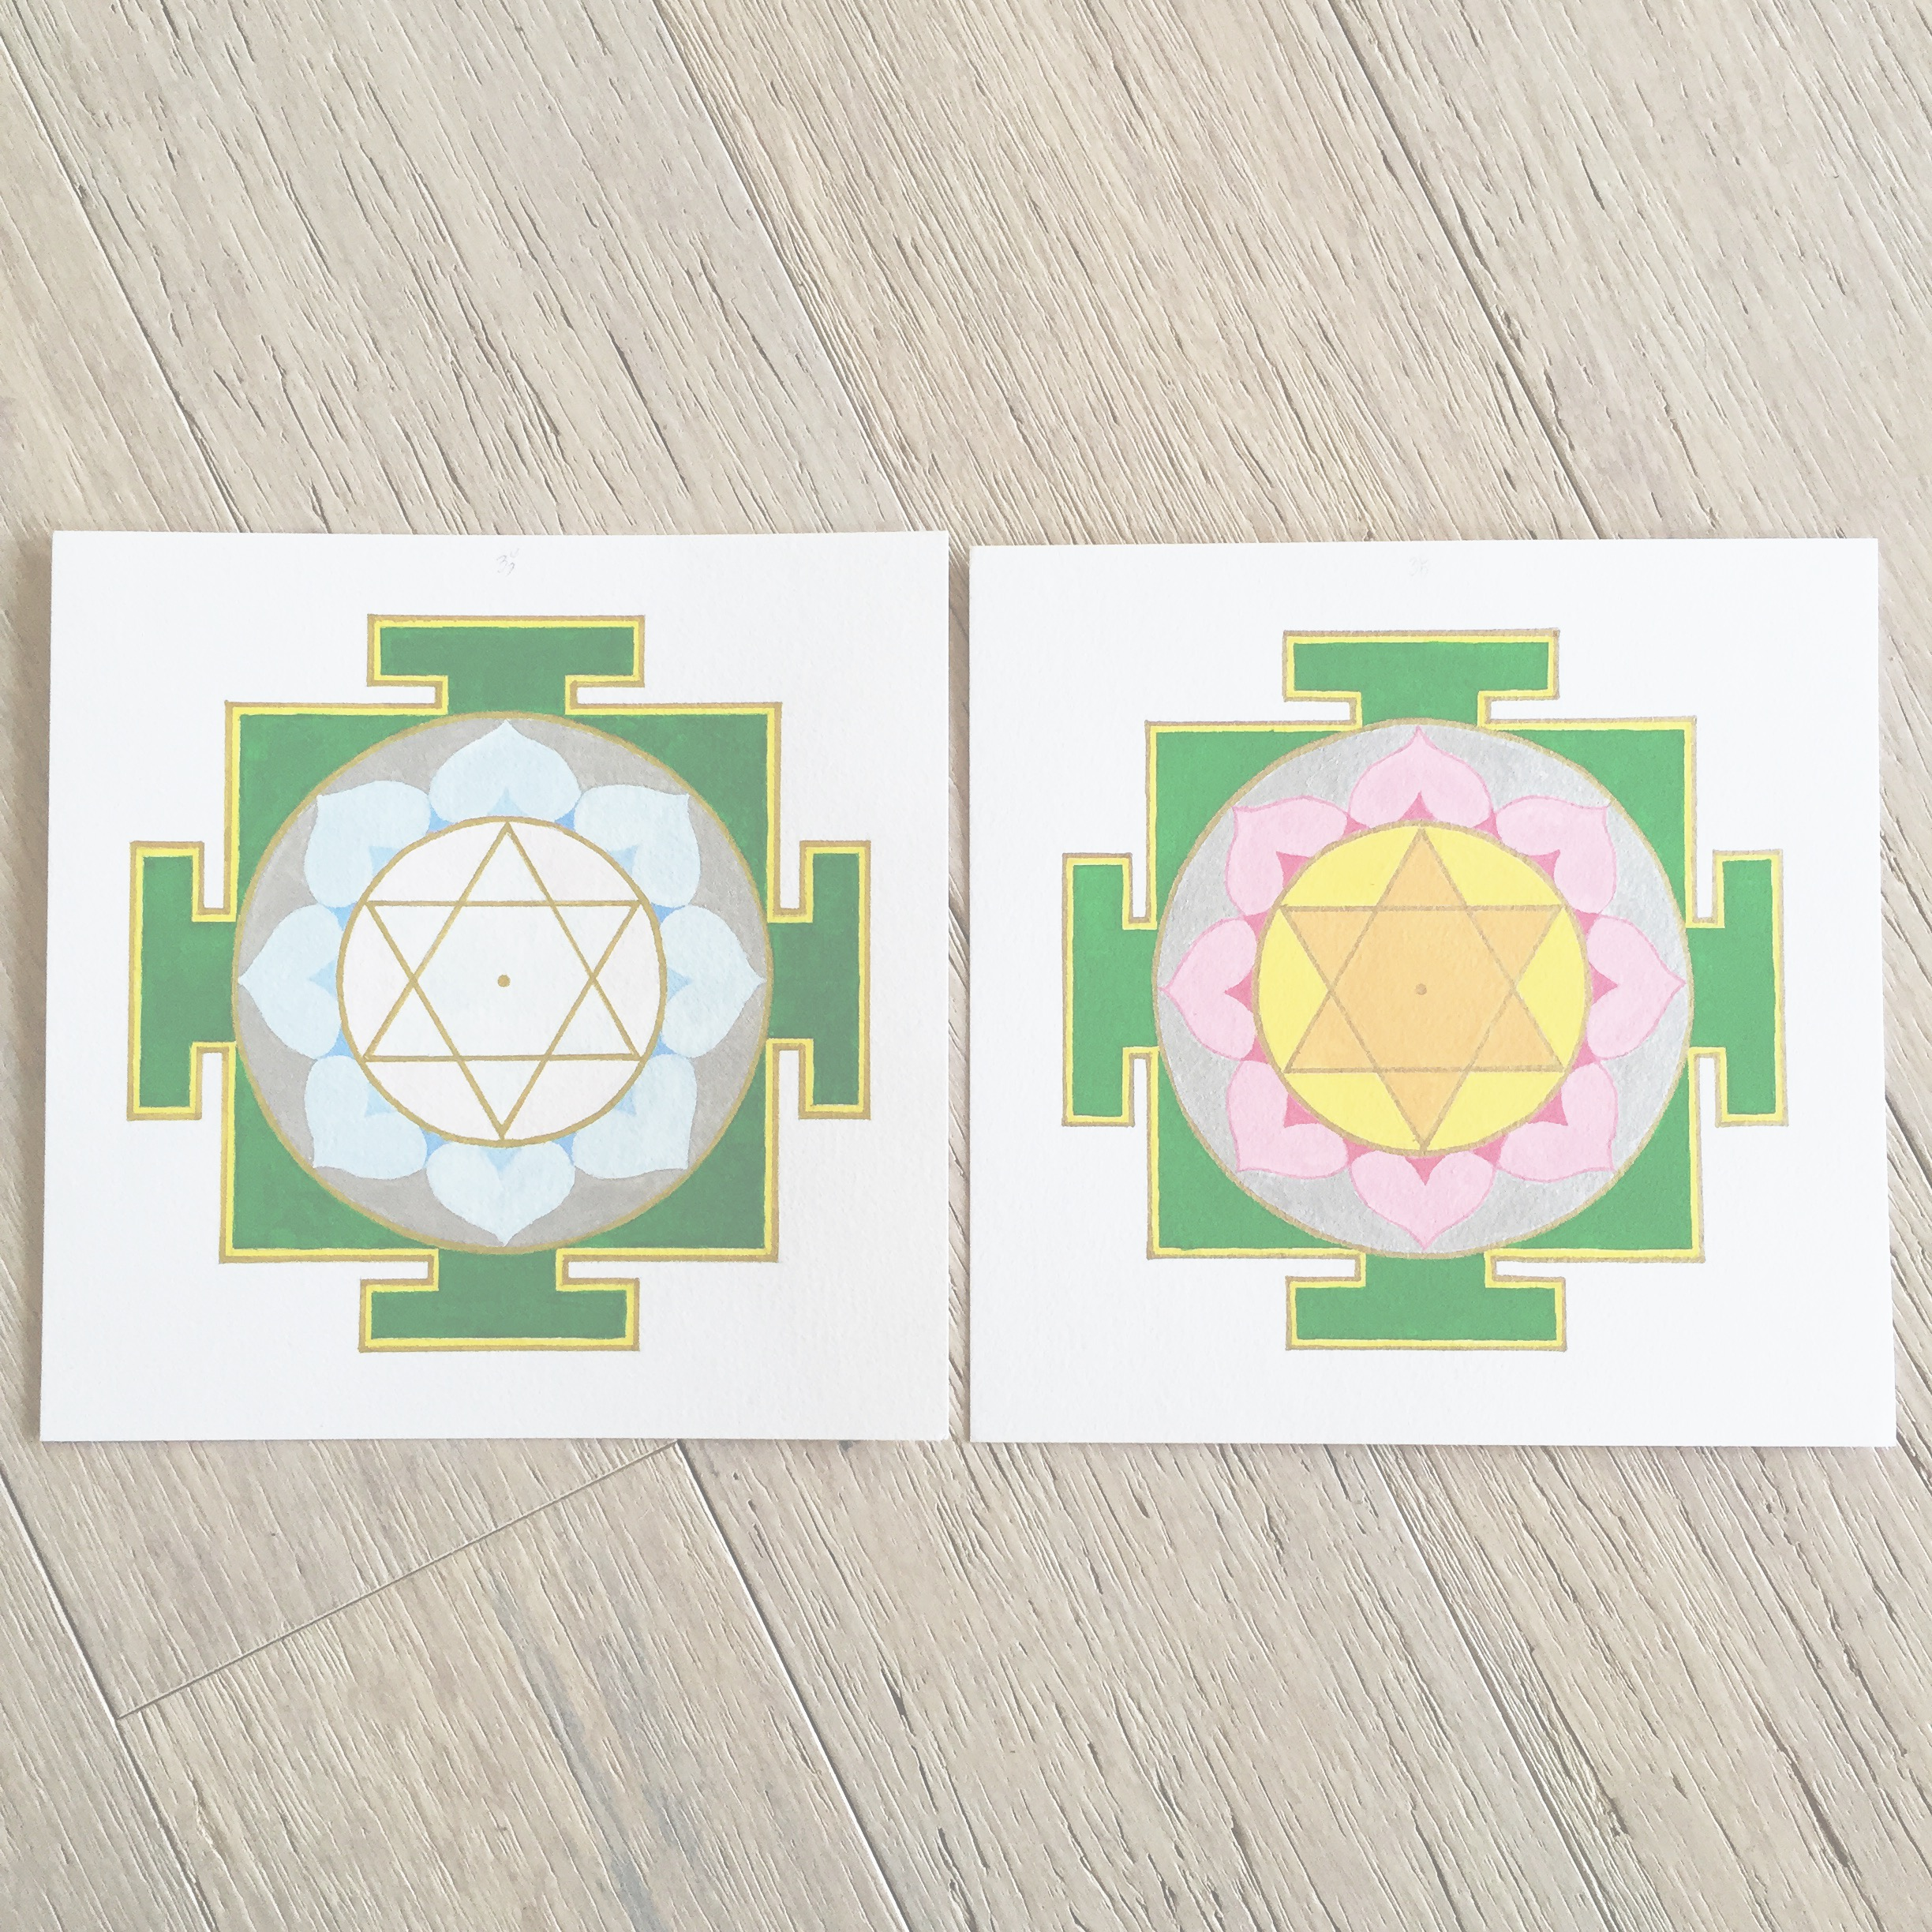 Goddess  yantras  knowledge and prosperity completed.  #saraswati   #lakshmi   #yantra